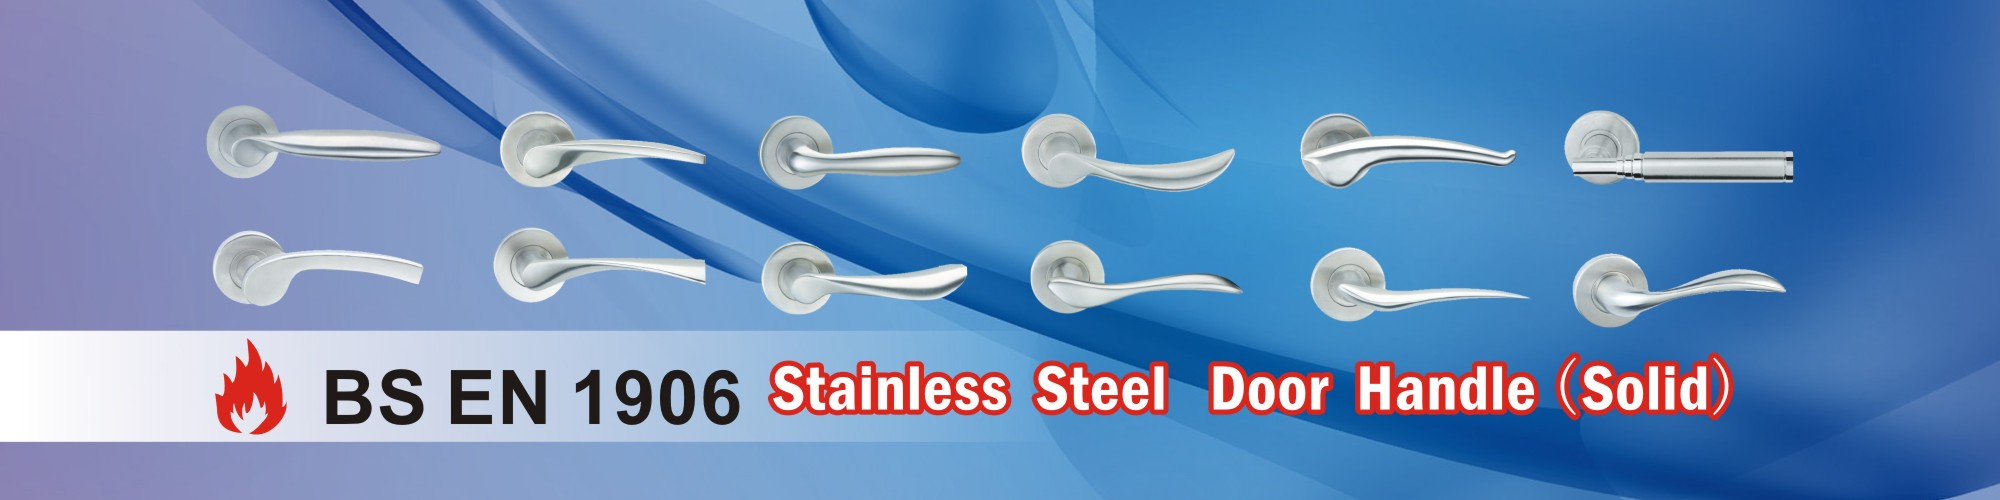 Stainless Steel Door Handle(Solid)-D&D door handle hardware manufacturer